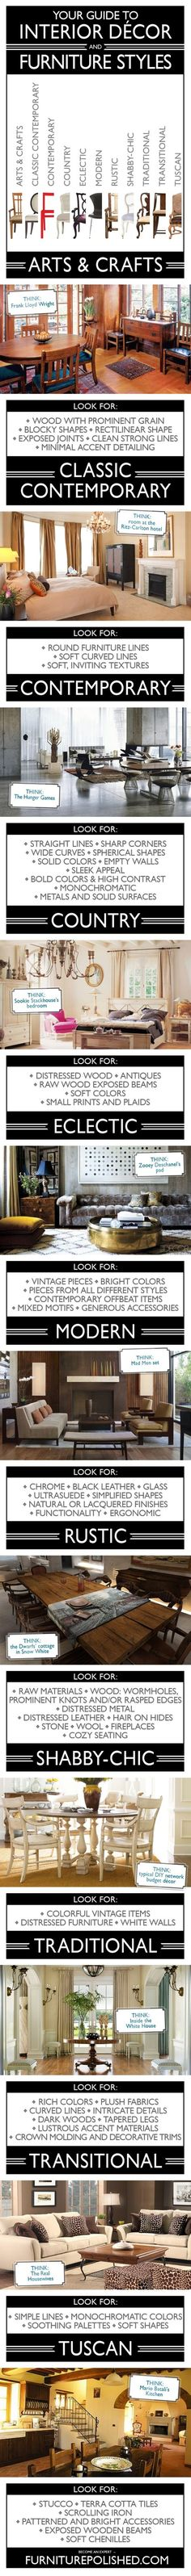 Style guide @ Home Designs